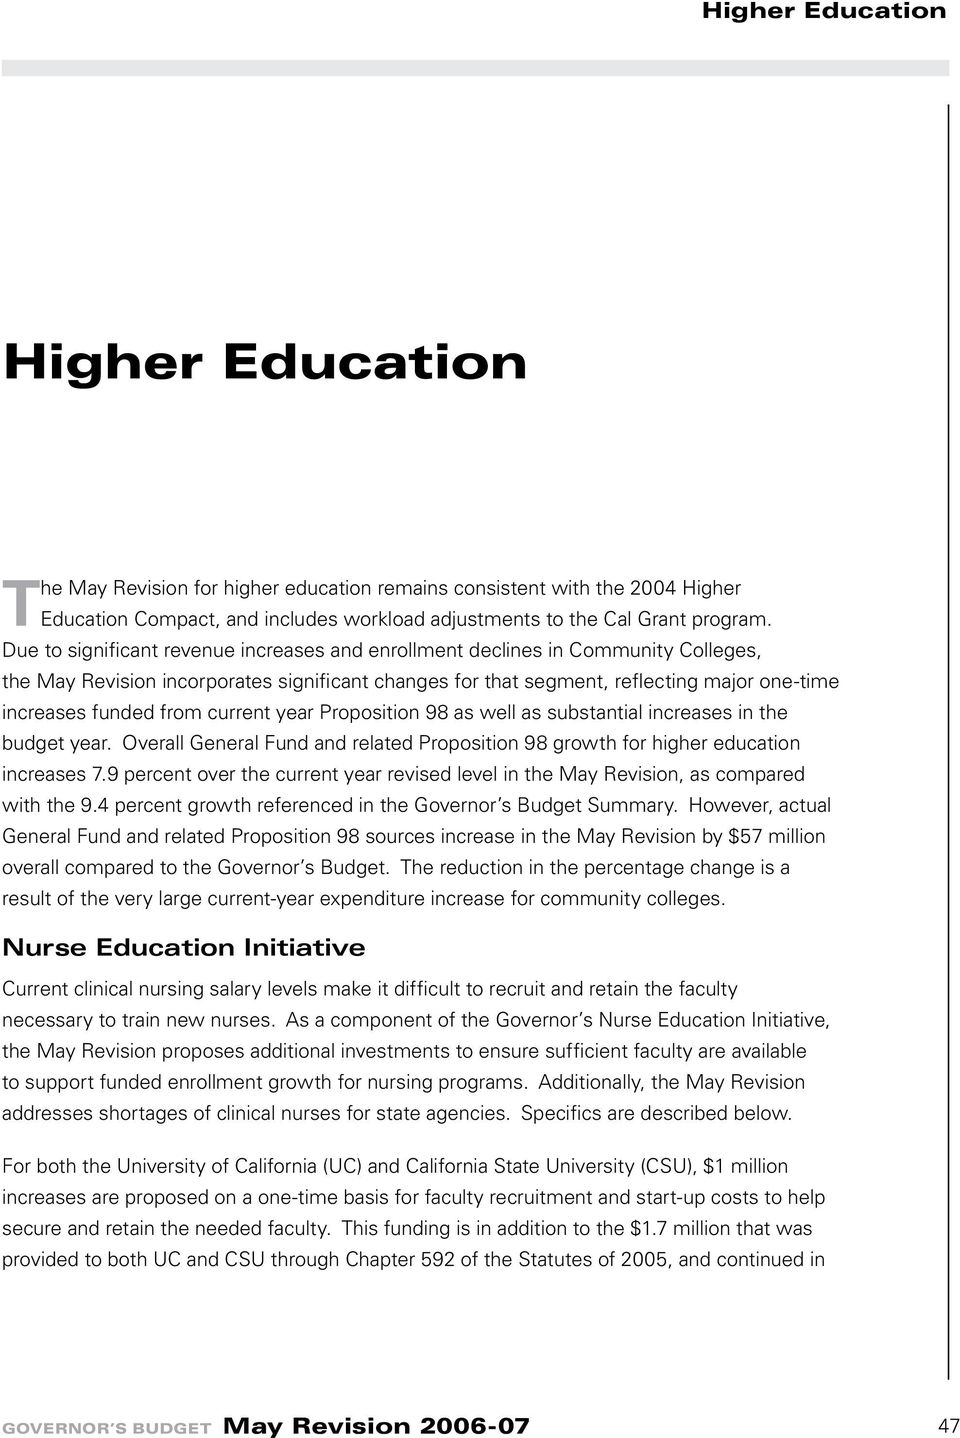 current year Proposition 98 as well as substantial increases in the budget year. Overall General Fund and related Proposition 98 growth for higher education increases 7.